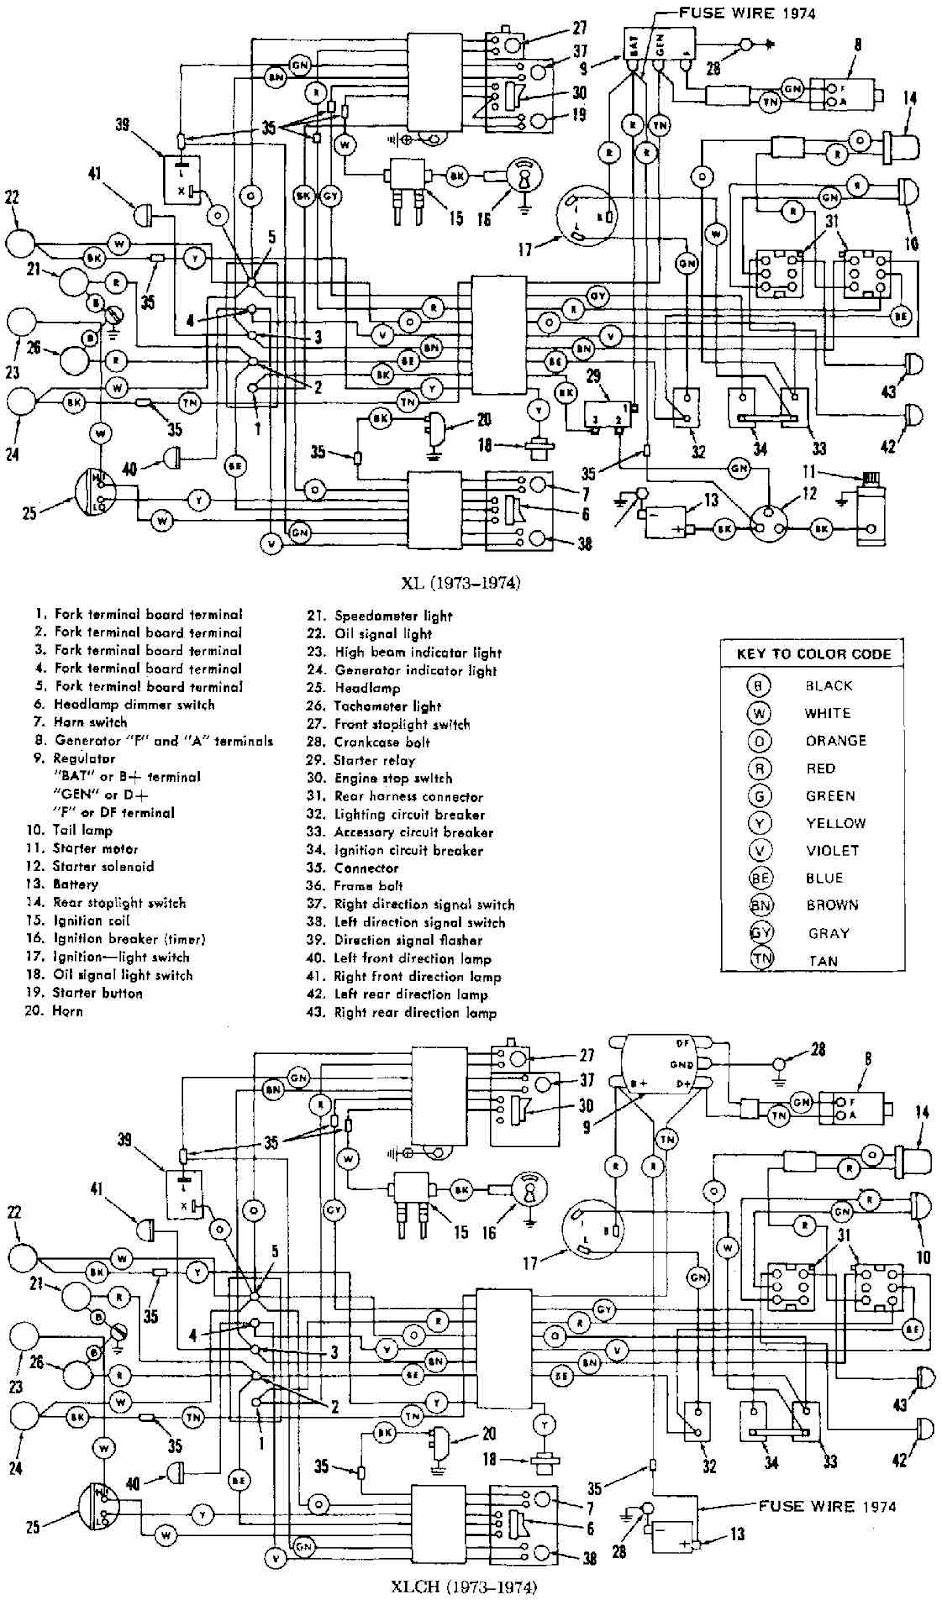 2013 Harley Davidson Stereo Wiring Diagram Free Download Harness Colors Ultra Radio Beautiful Harmon Contemporary